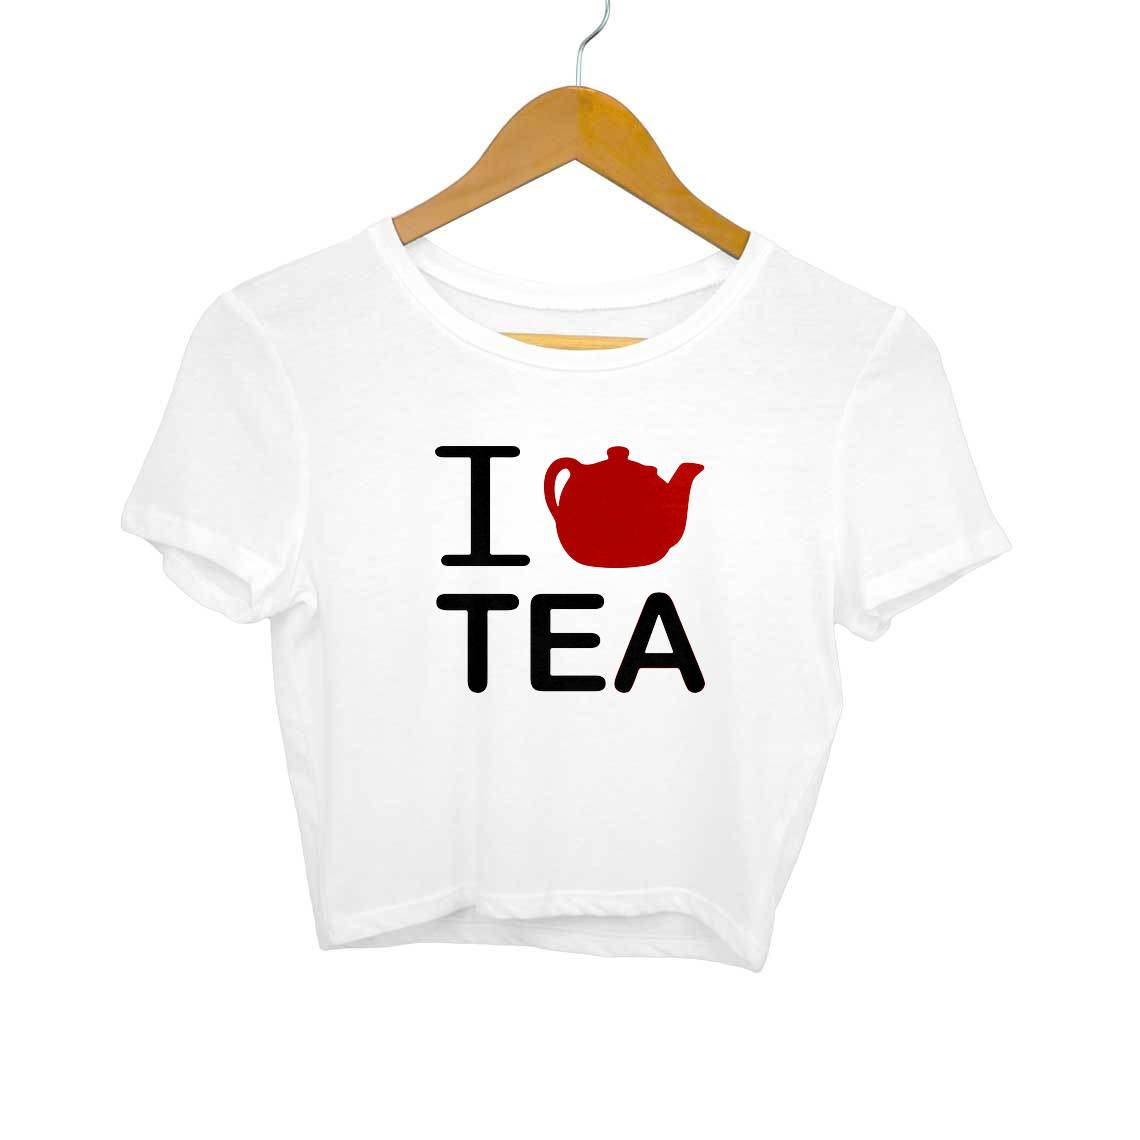 I Love Tea Crop Tops